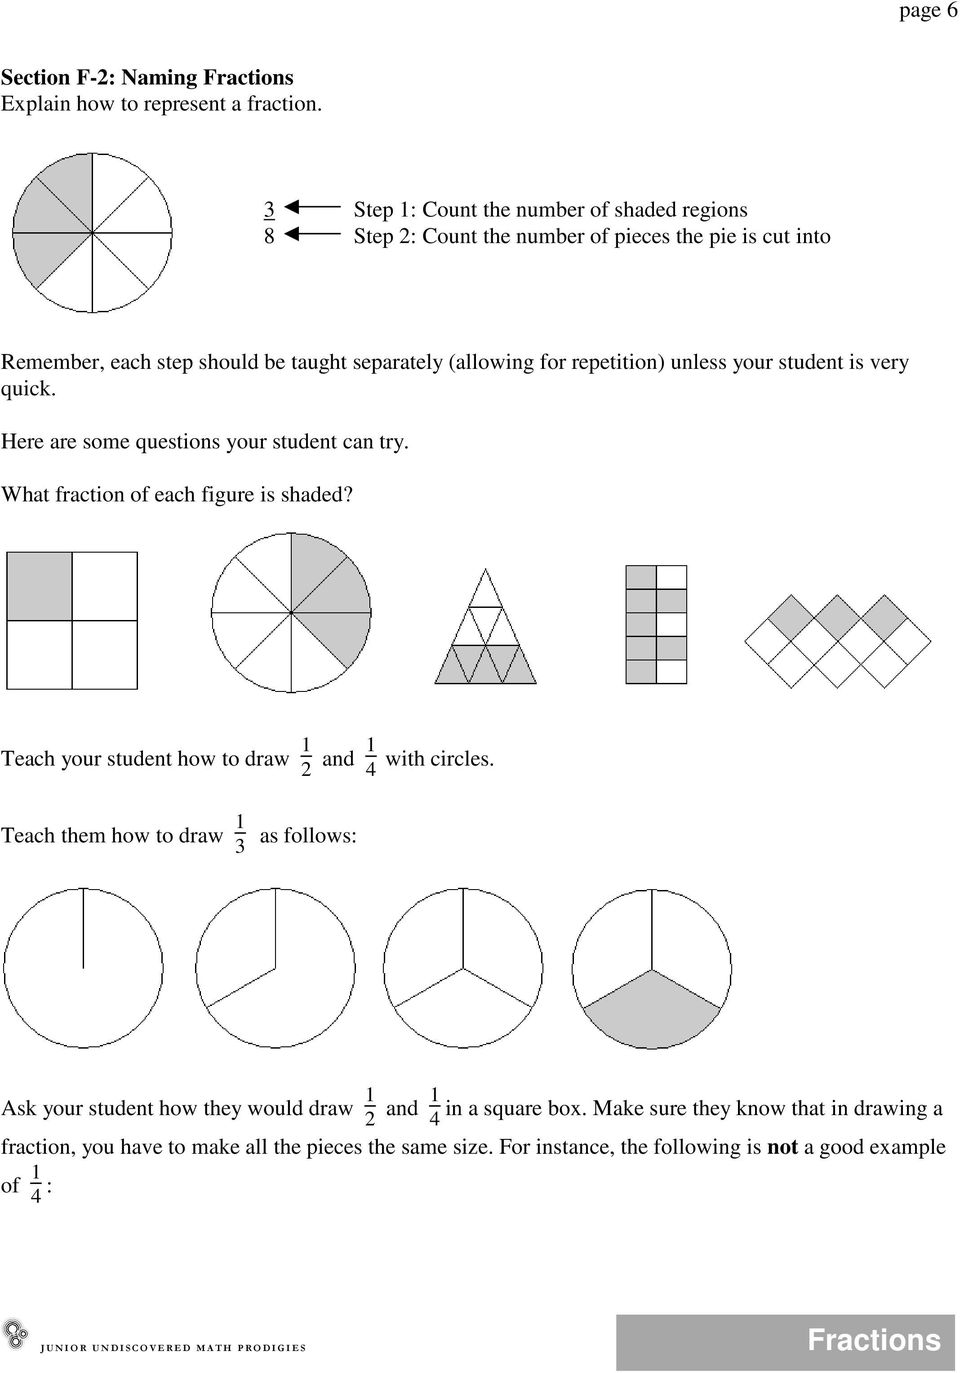 medium resolution of JUMP Math: Teacher's Manual for the Fractions Unit - PDF Free Download